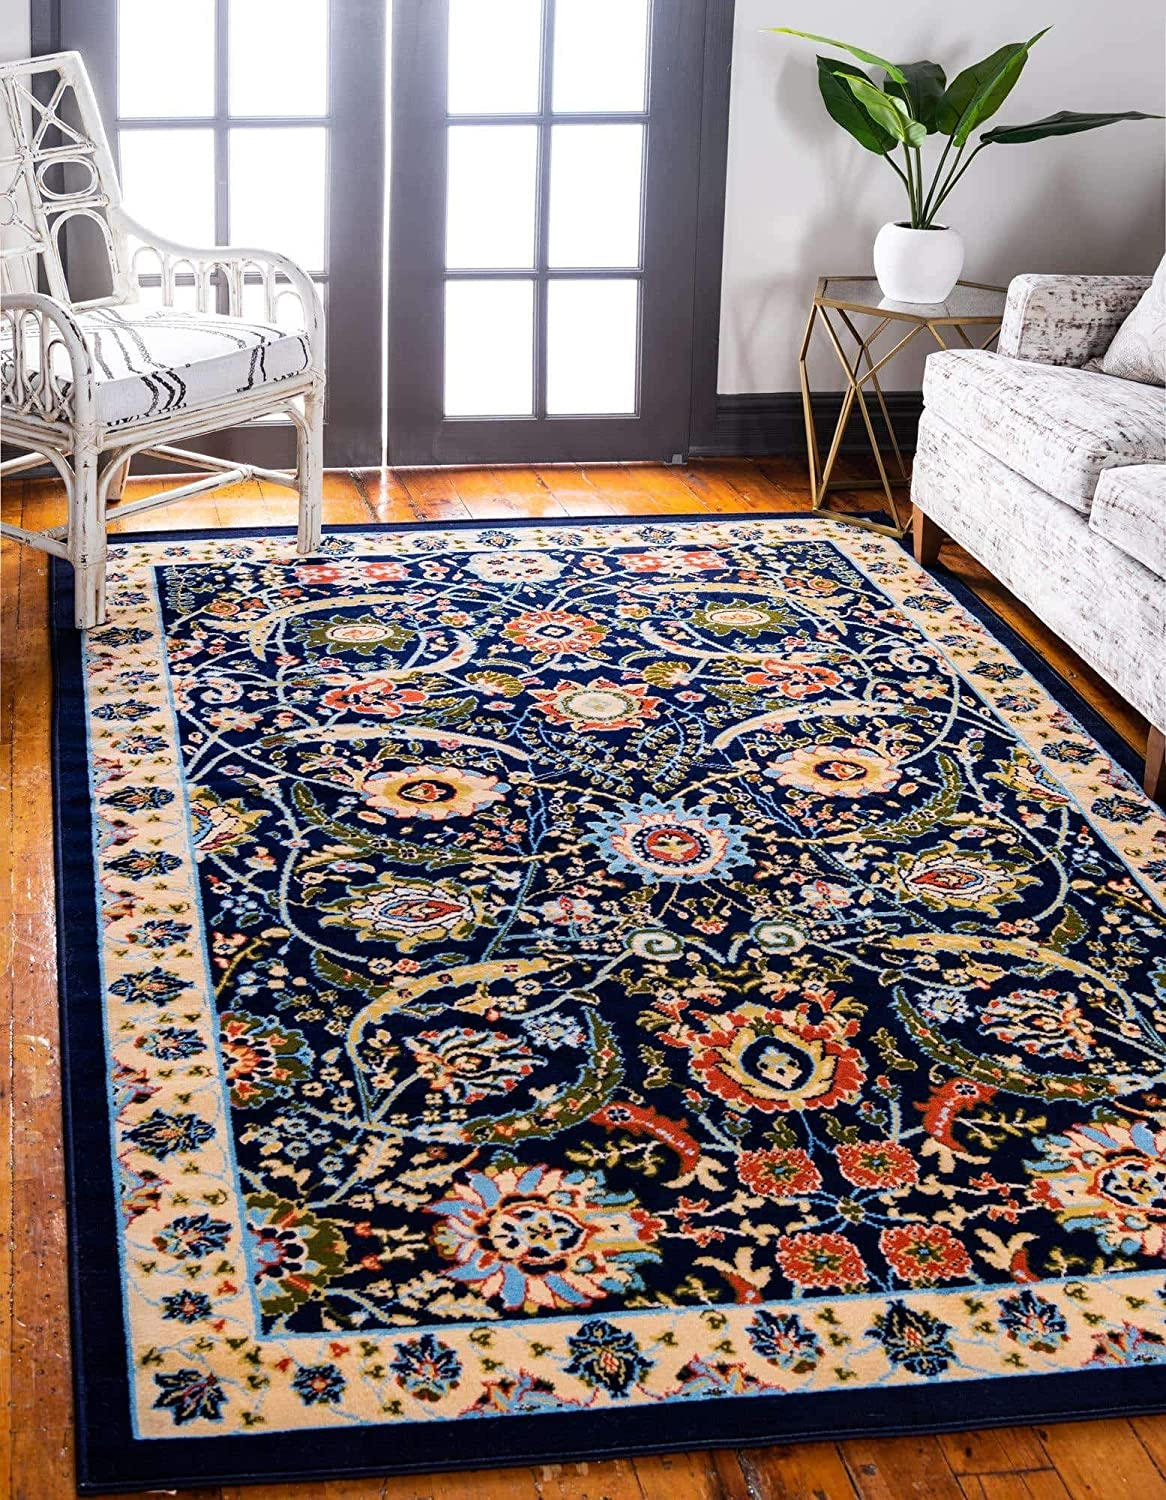 Unique Loom Espahan Collection Classic Traditional Navy Blue Area Rug (6' 0 x 9' 0)